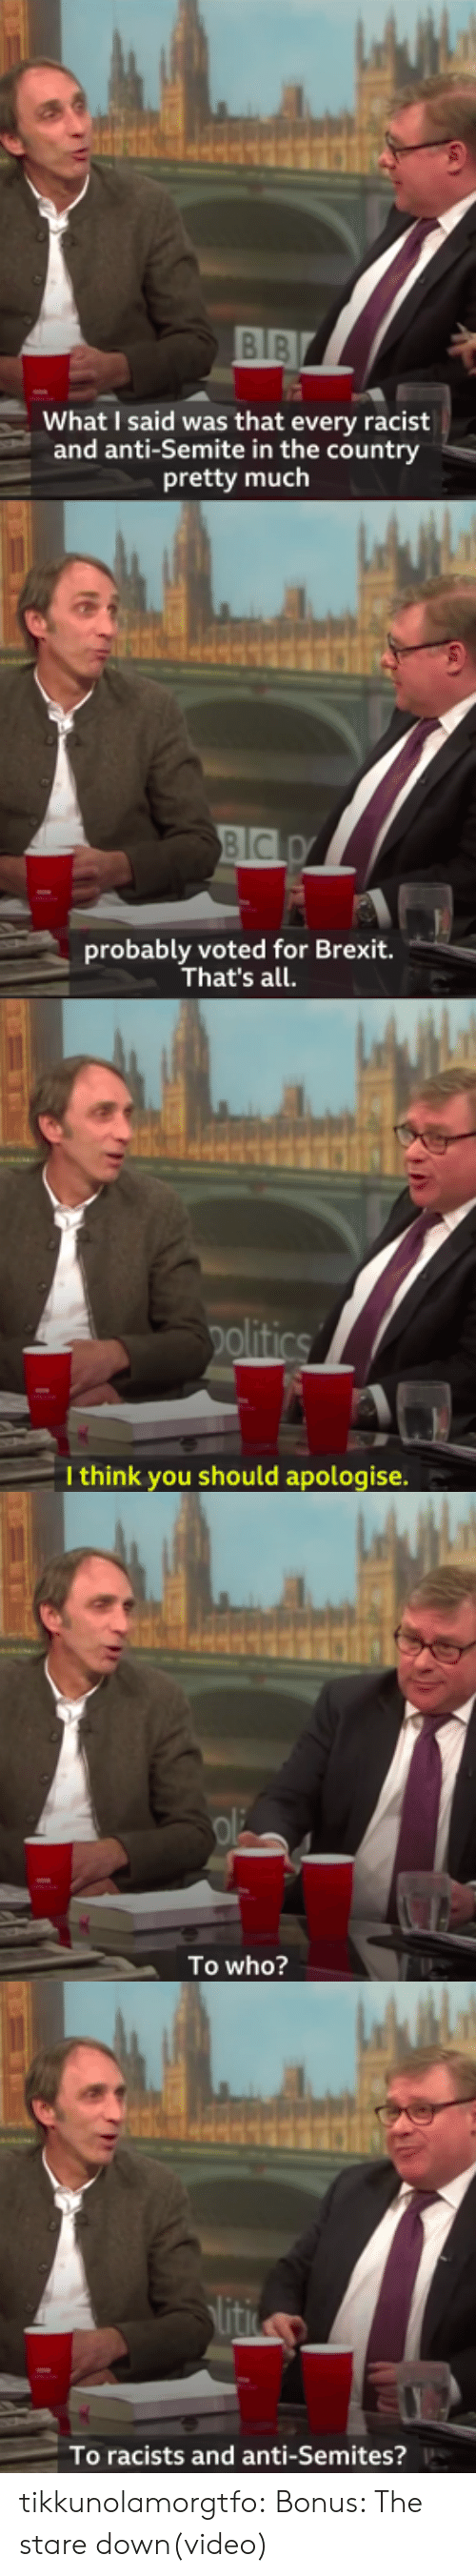 Gif, Tumblr, and Blog: BIB  What I said was that every racist  and anti-Semite in the country  pretty much   probably voted for Brexit.  That's all.   I think you should apologise.   To who?   To racists and anti-Semites? tikkunolamorgtfo:  Bonus: The stare down(video)